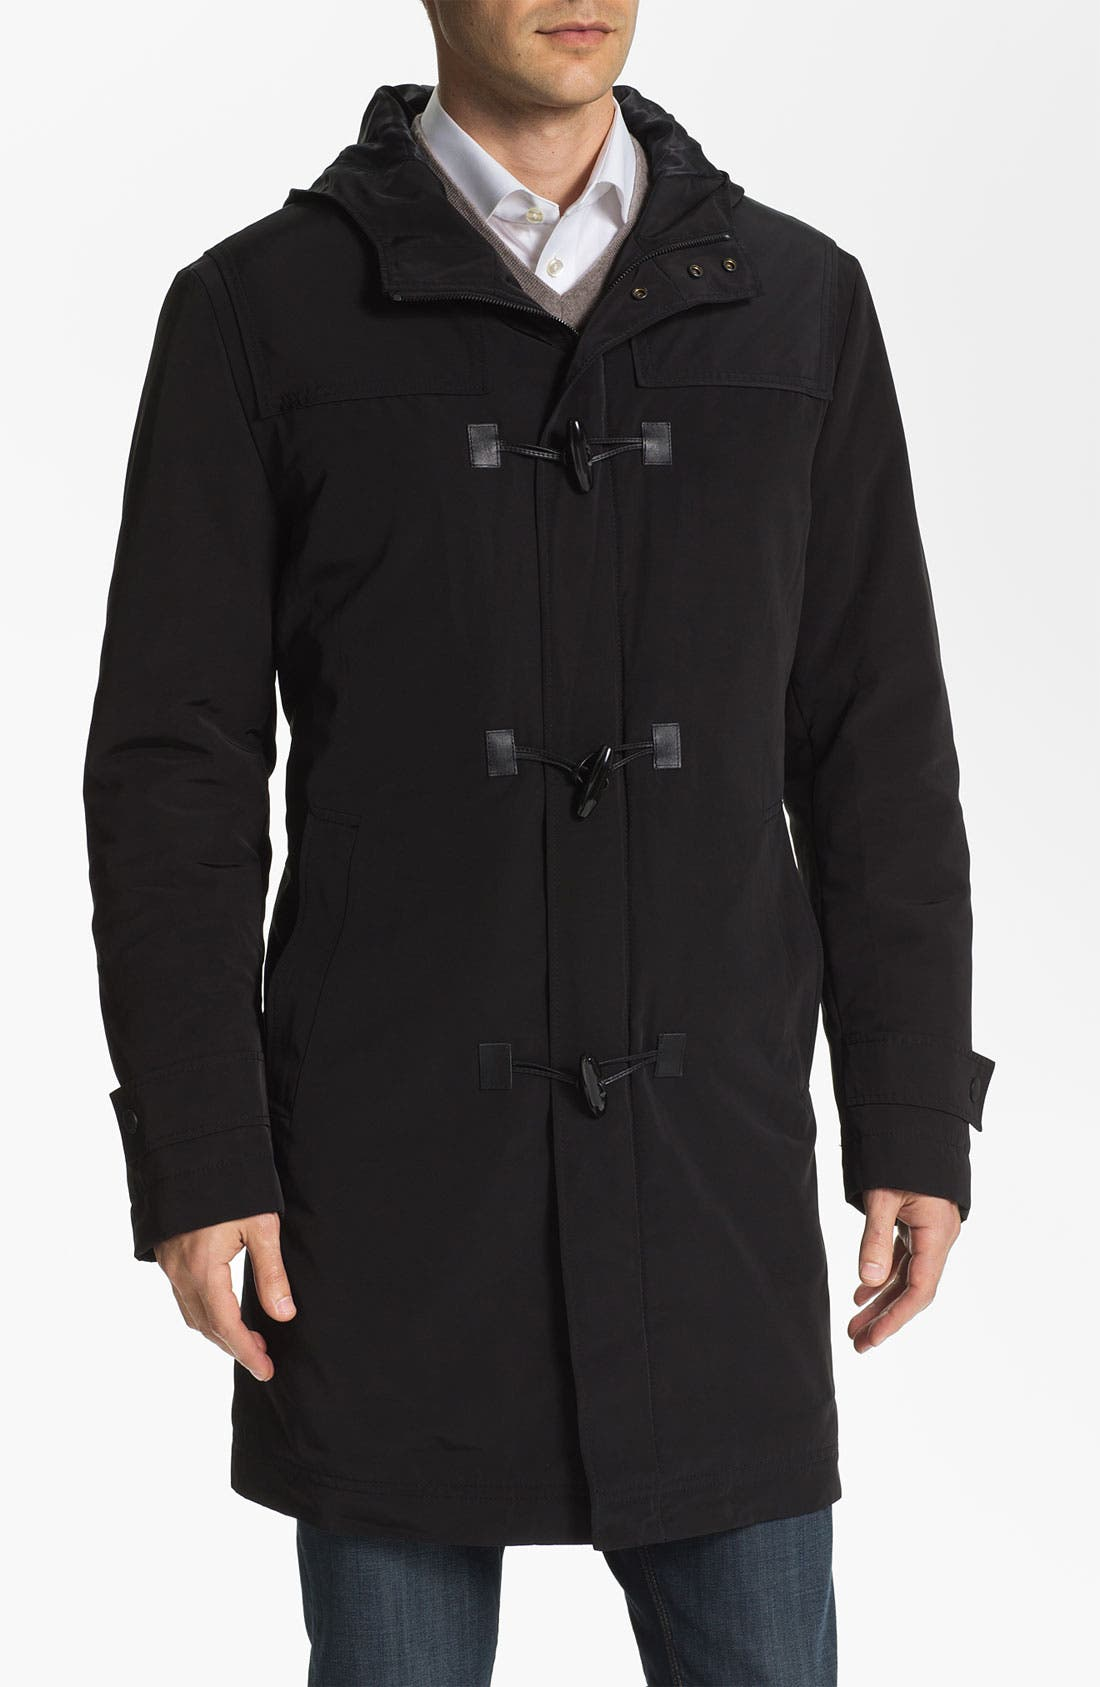 Main Image - BOSS Black 'Glade' Wrinkle Resistant Duffle Coat